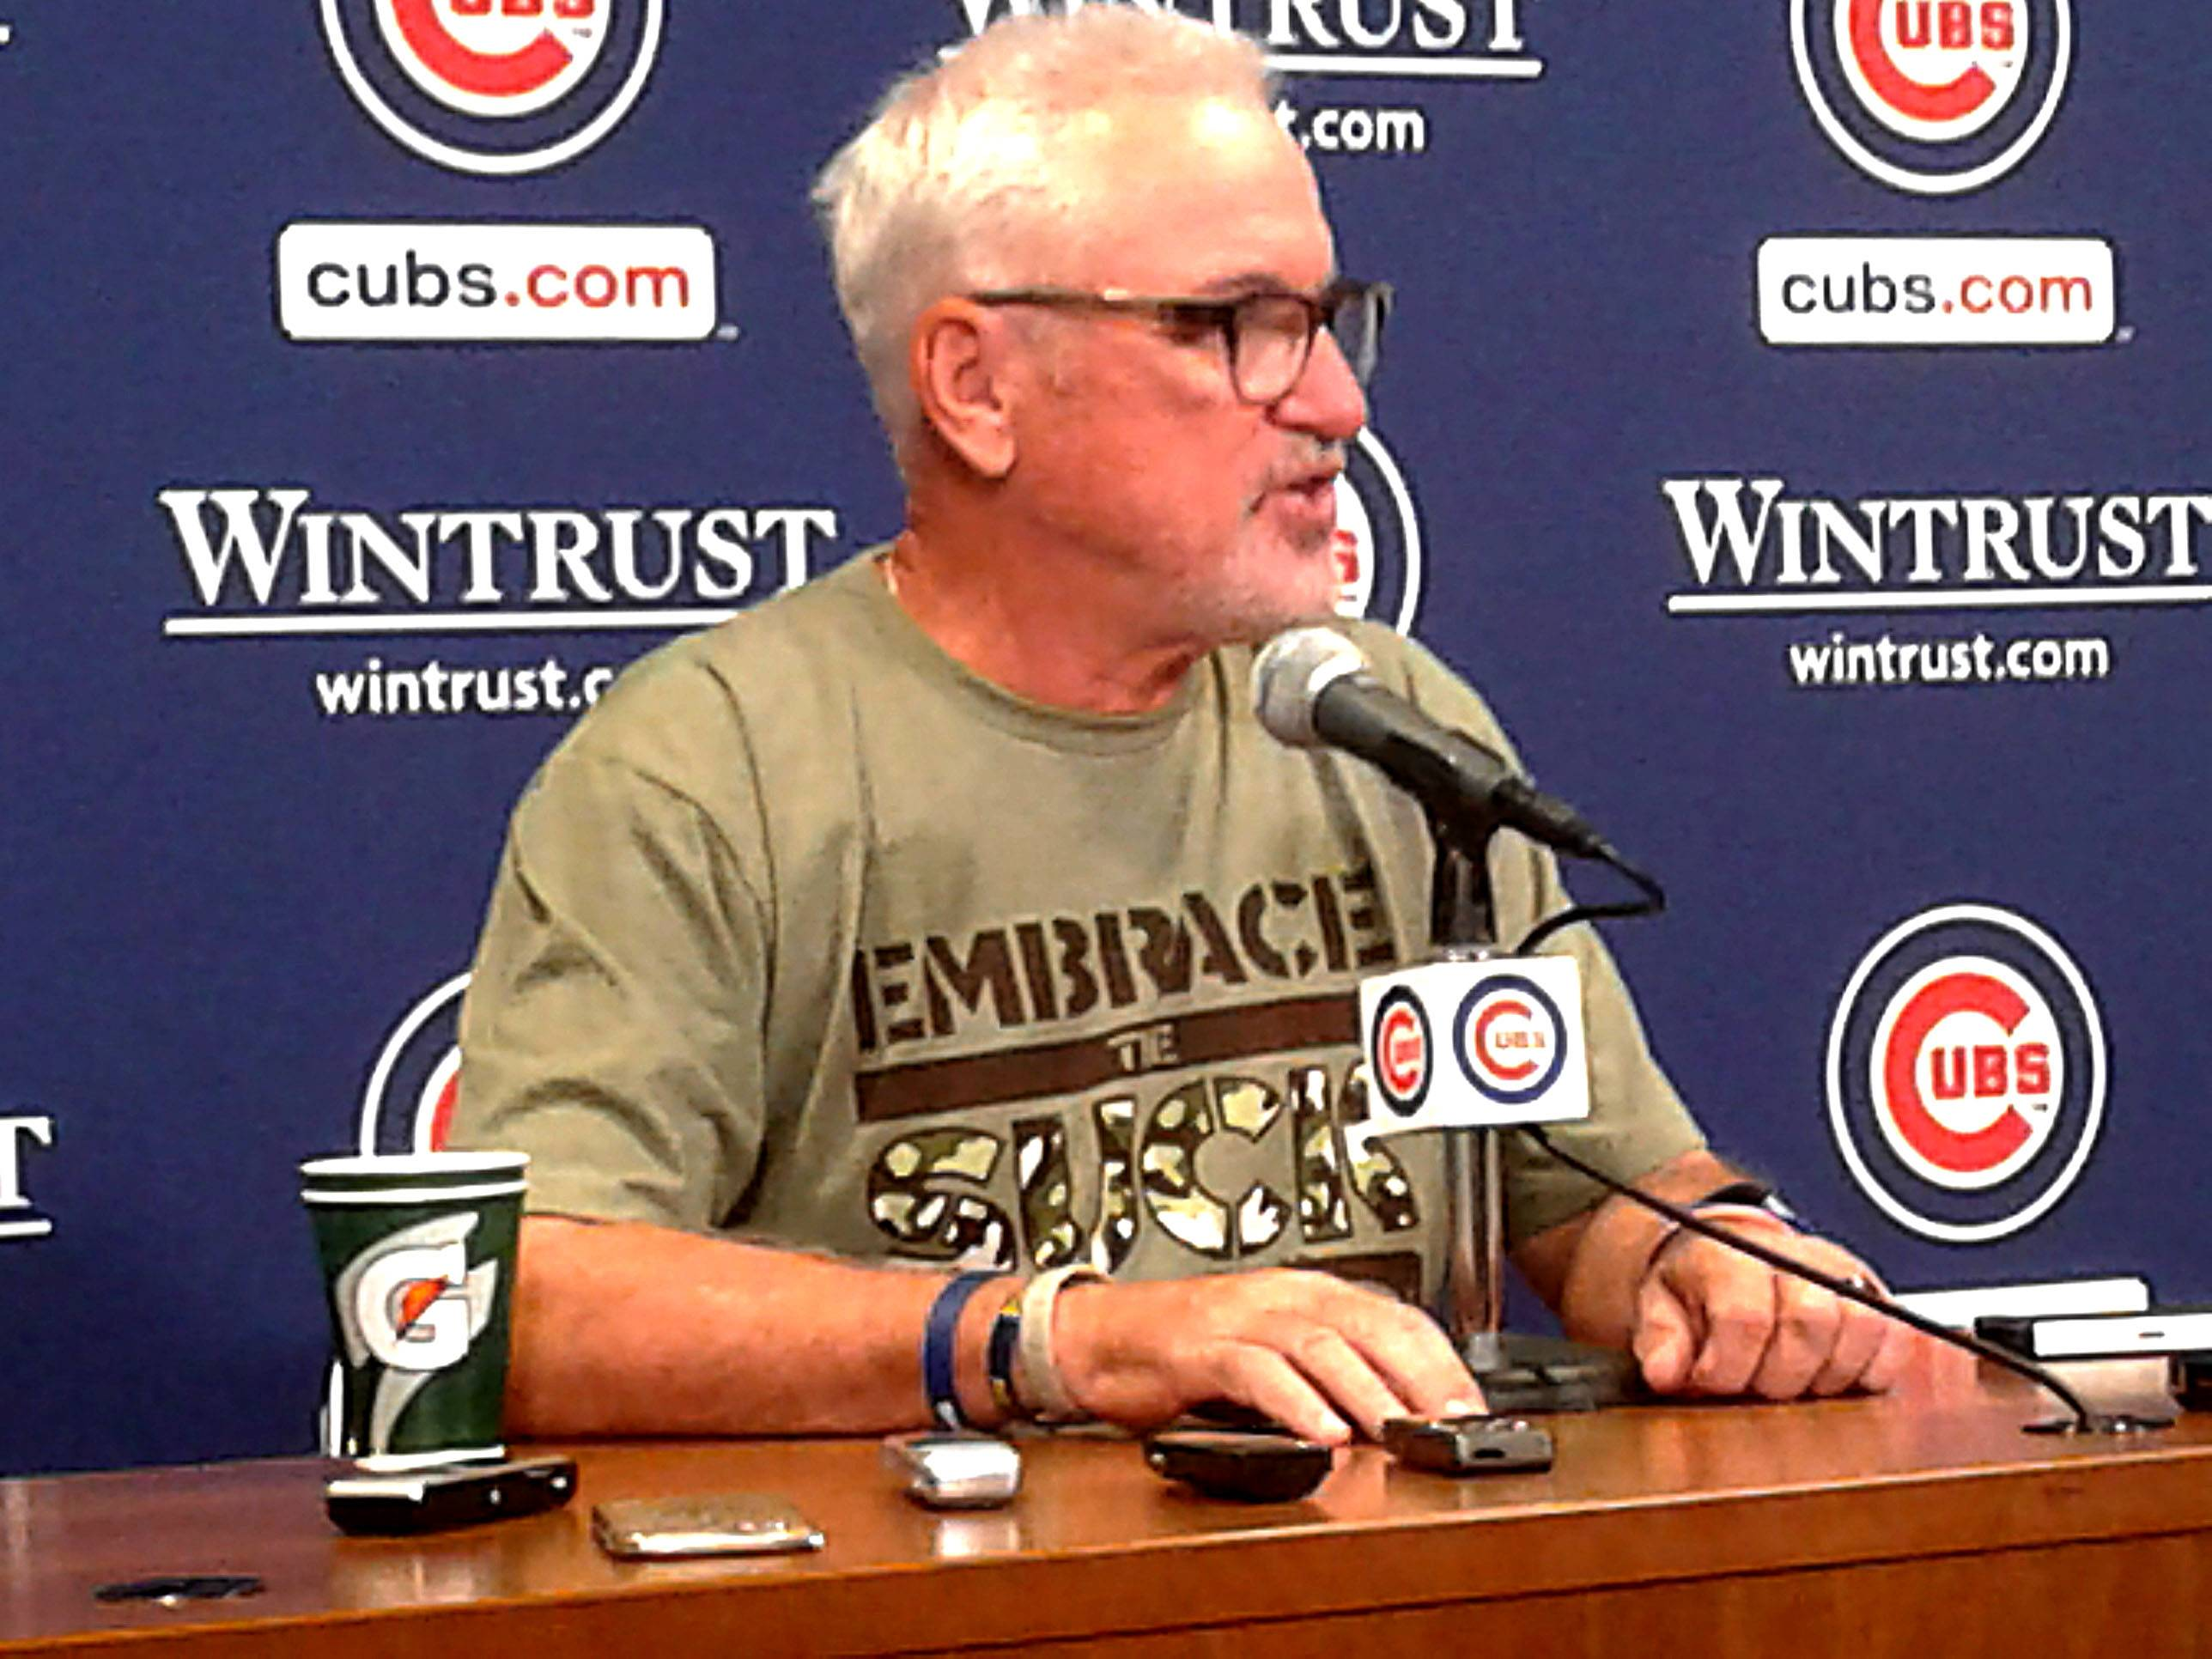 Chicago Cubs manager Joe Maddon has added another inspirational T-shirt to his collection. Its message may seem a little counterintuitive, but like Maddon says you gotta roll with it.